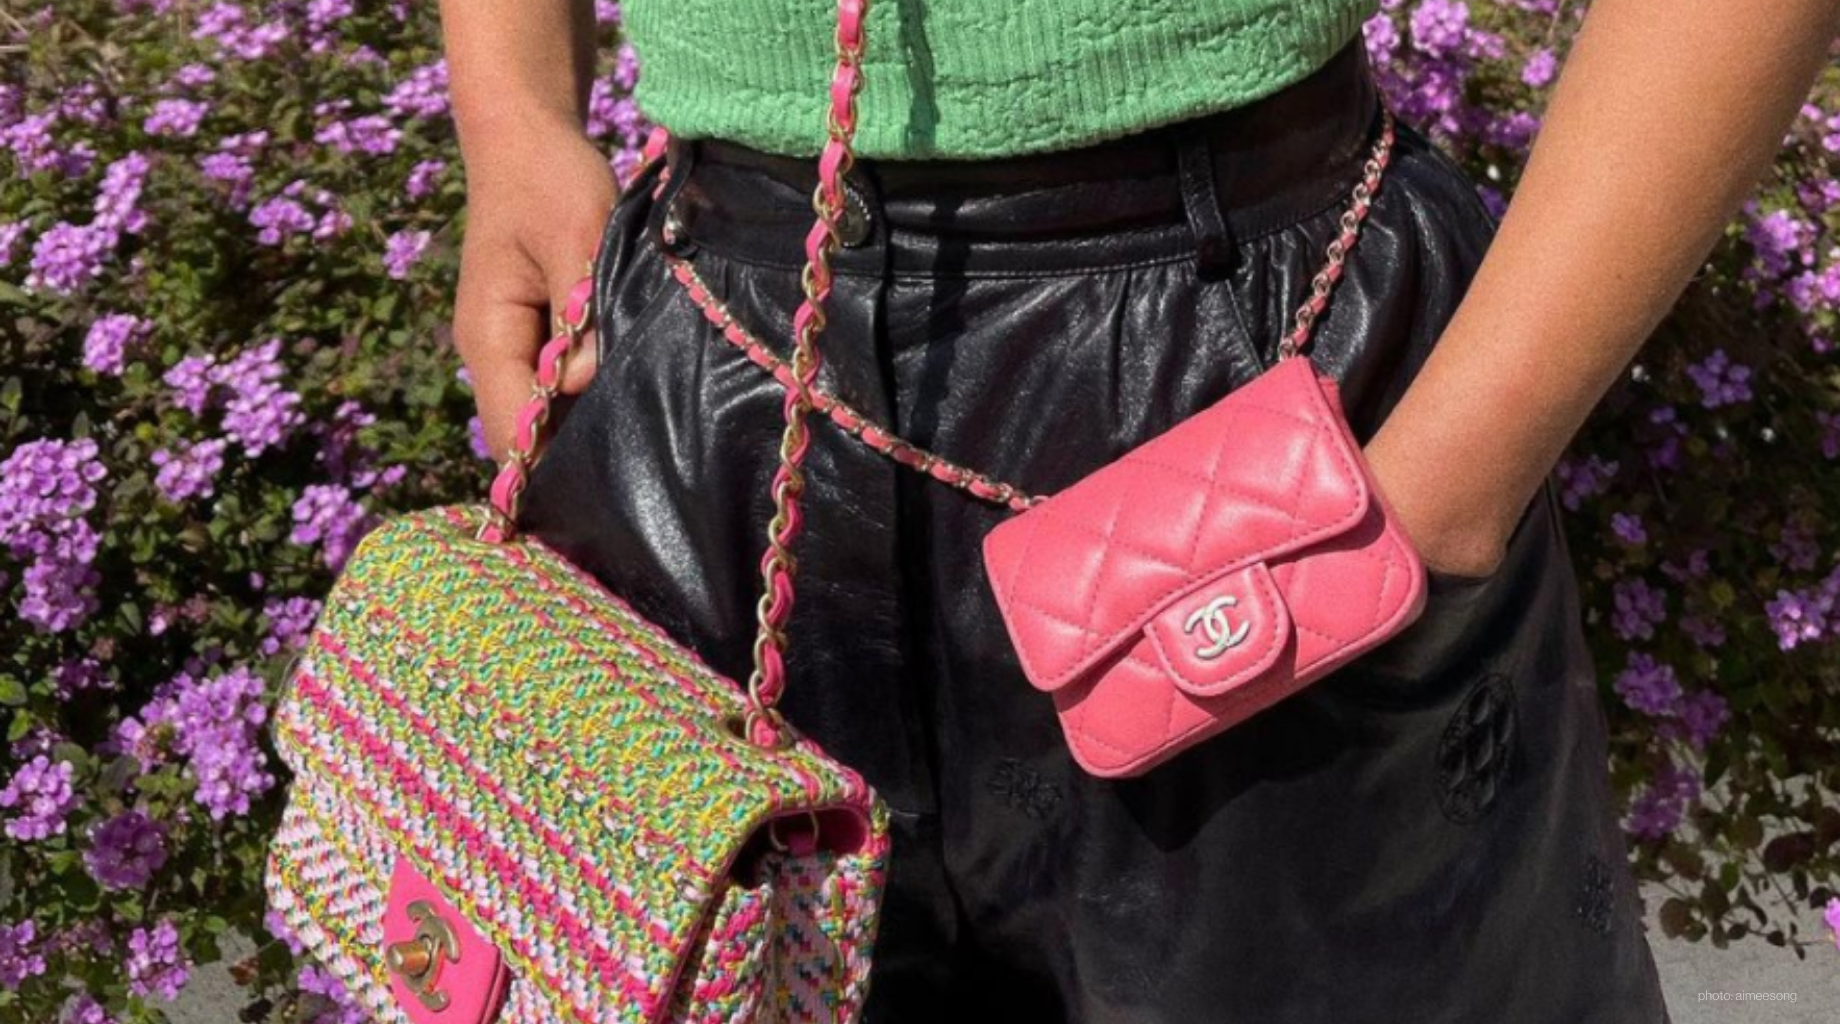 Two chanel bags